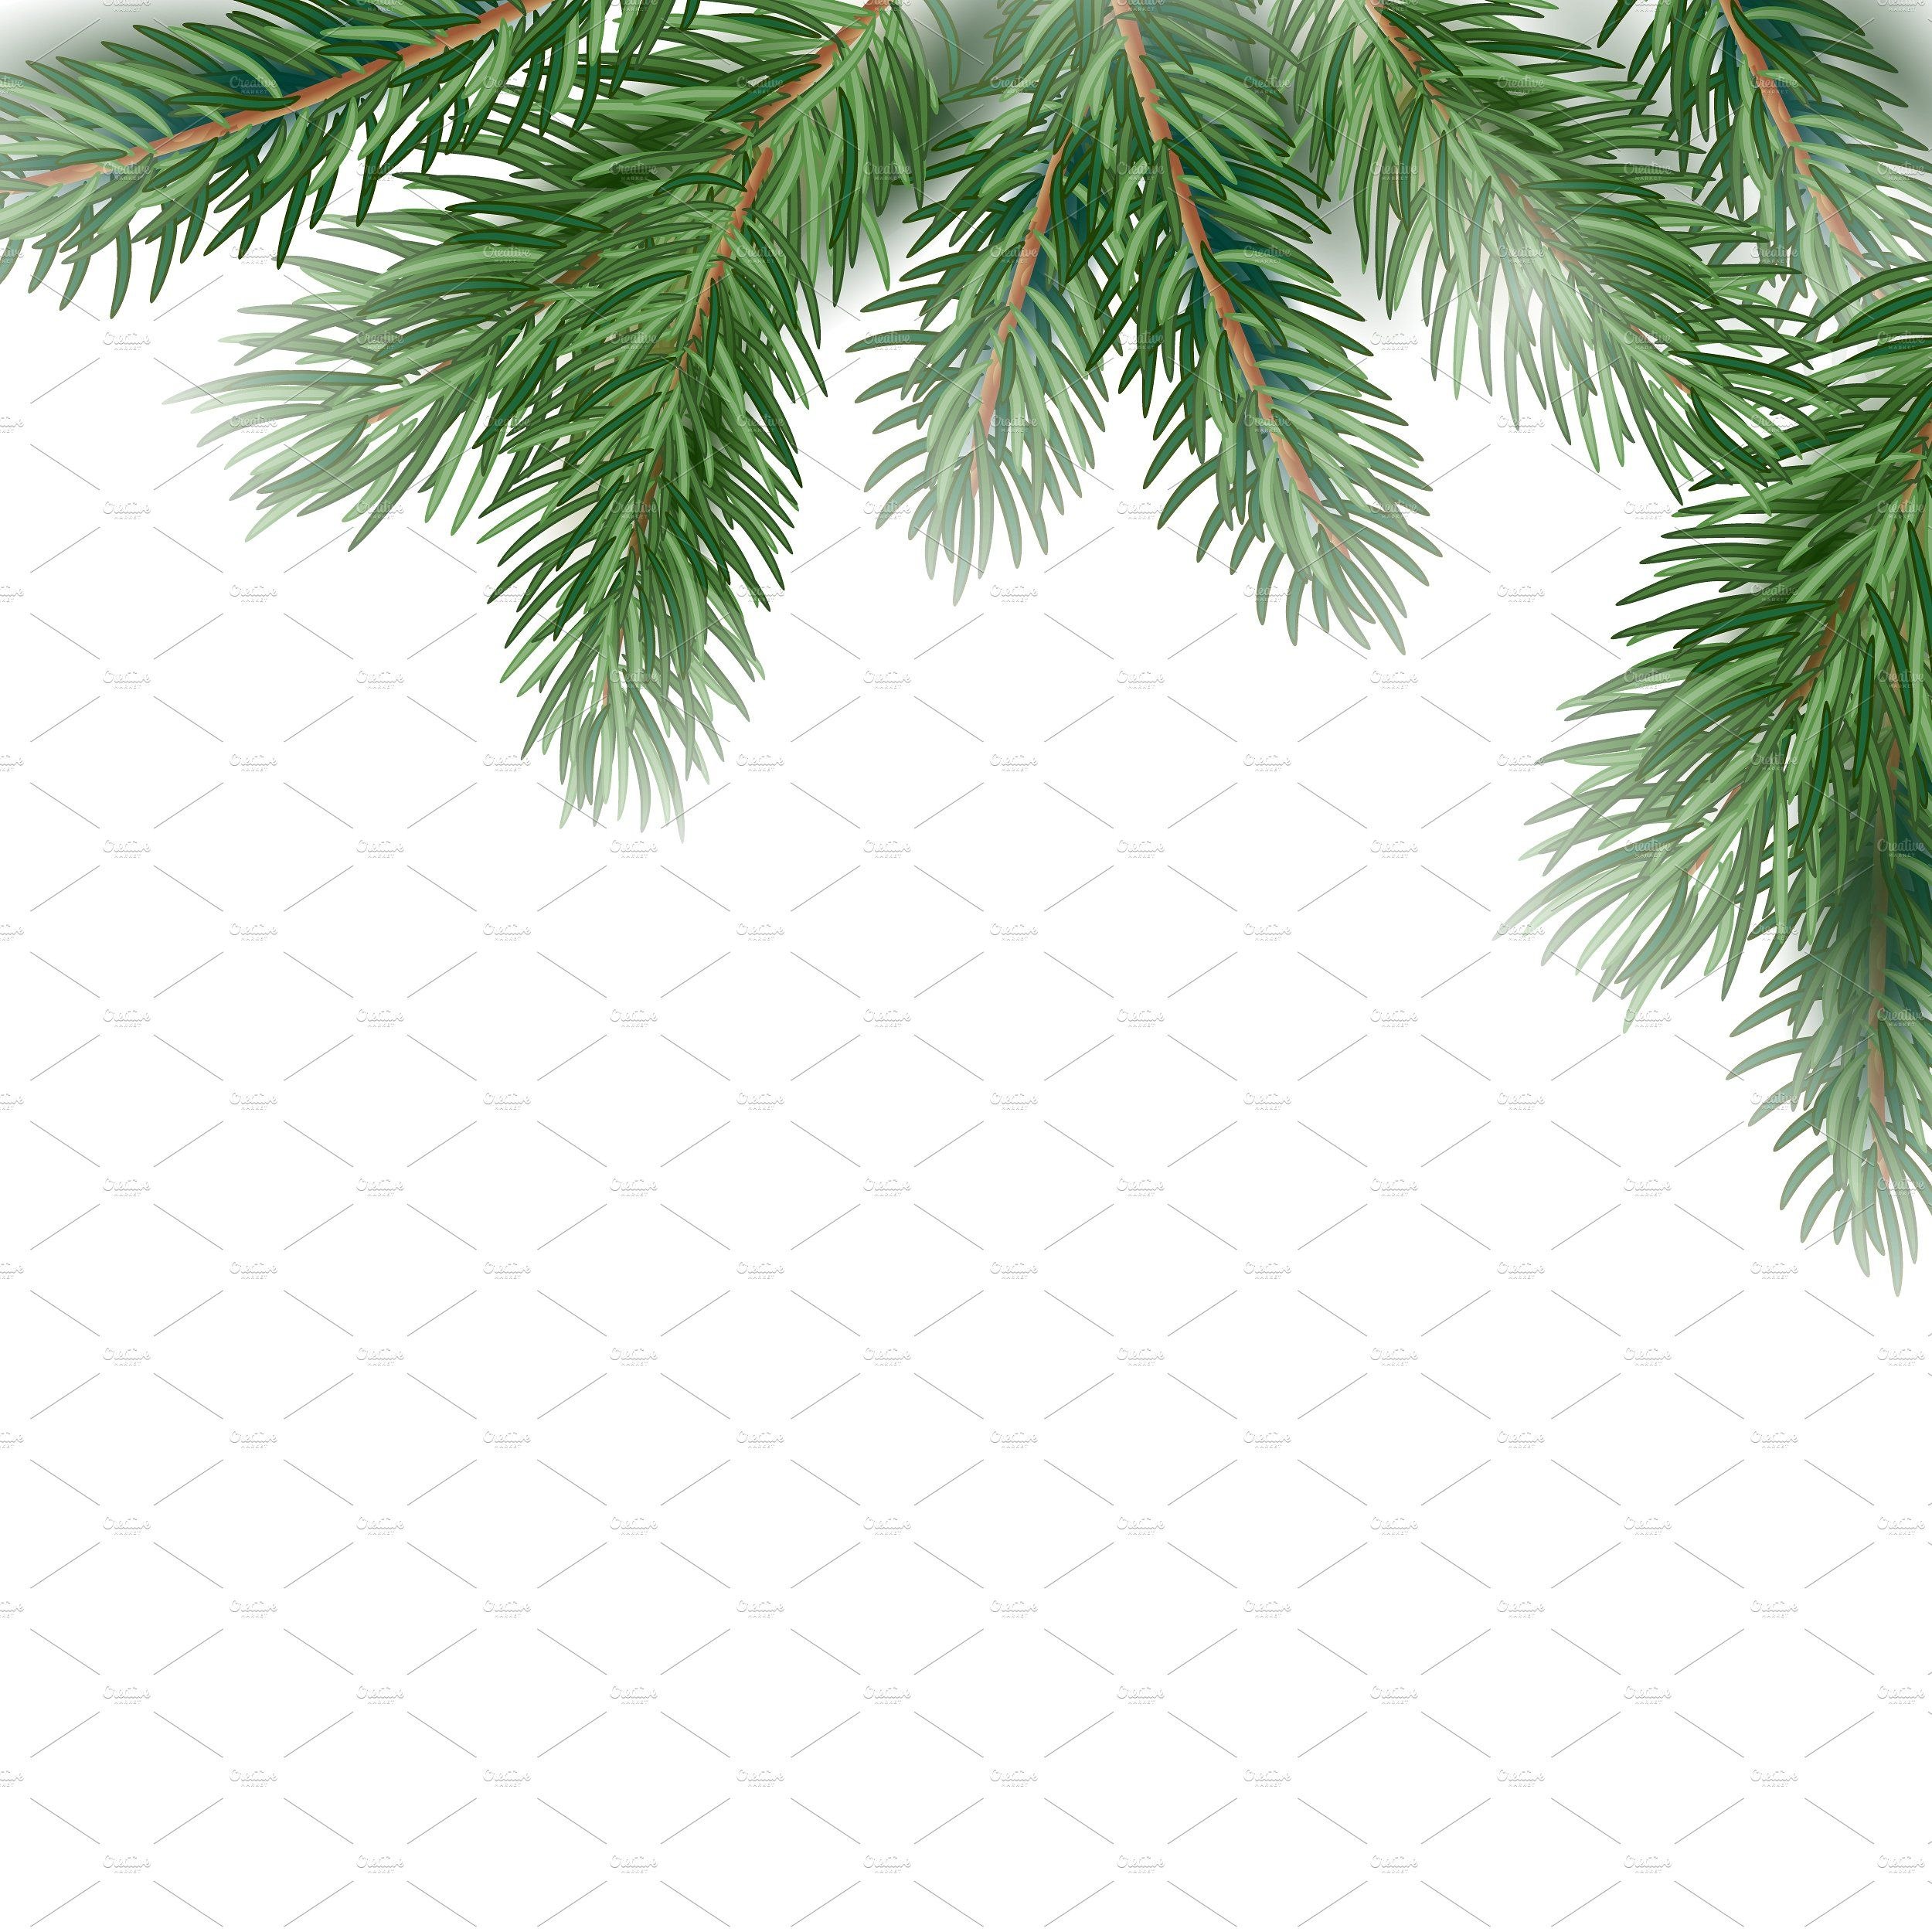 Fir Tree Branches background | Tree photoshop, Family tree ...